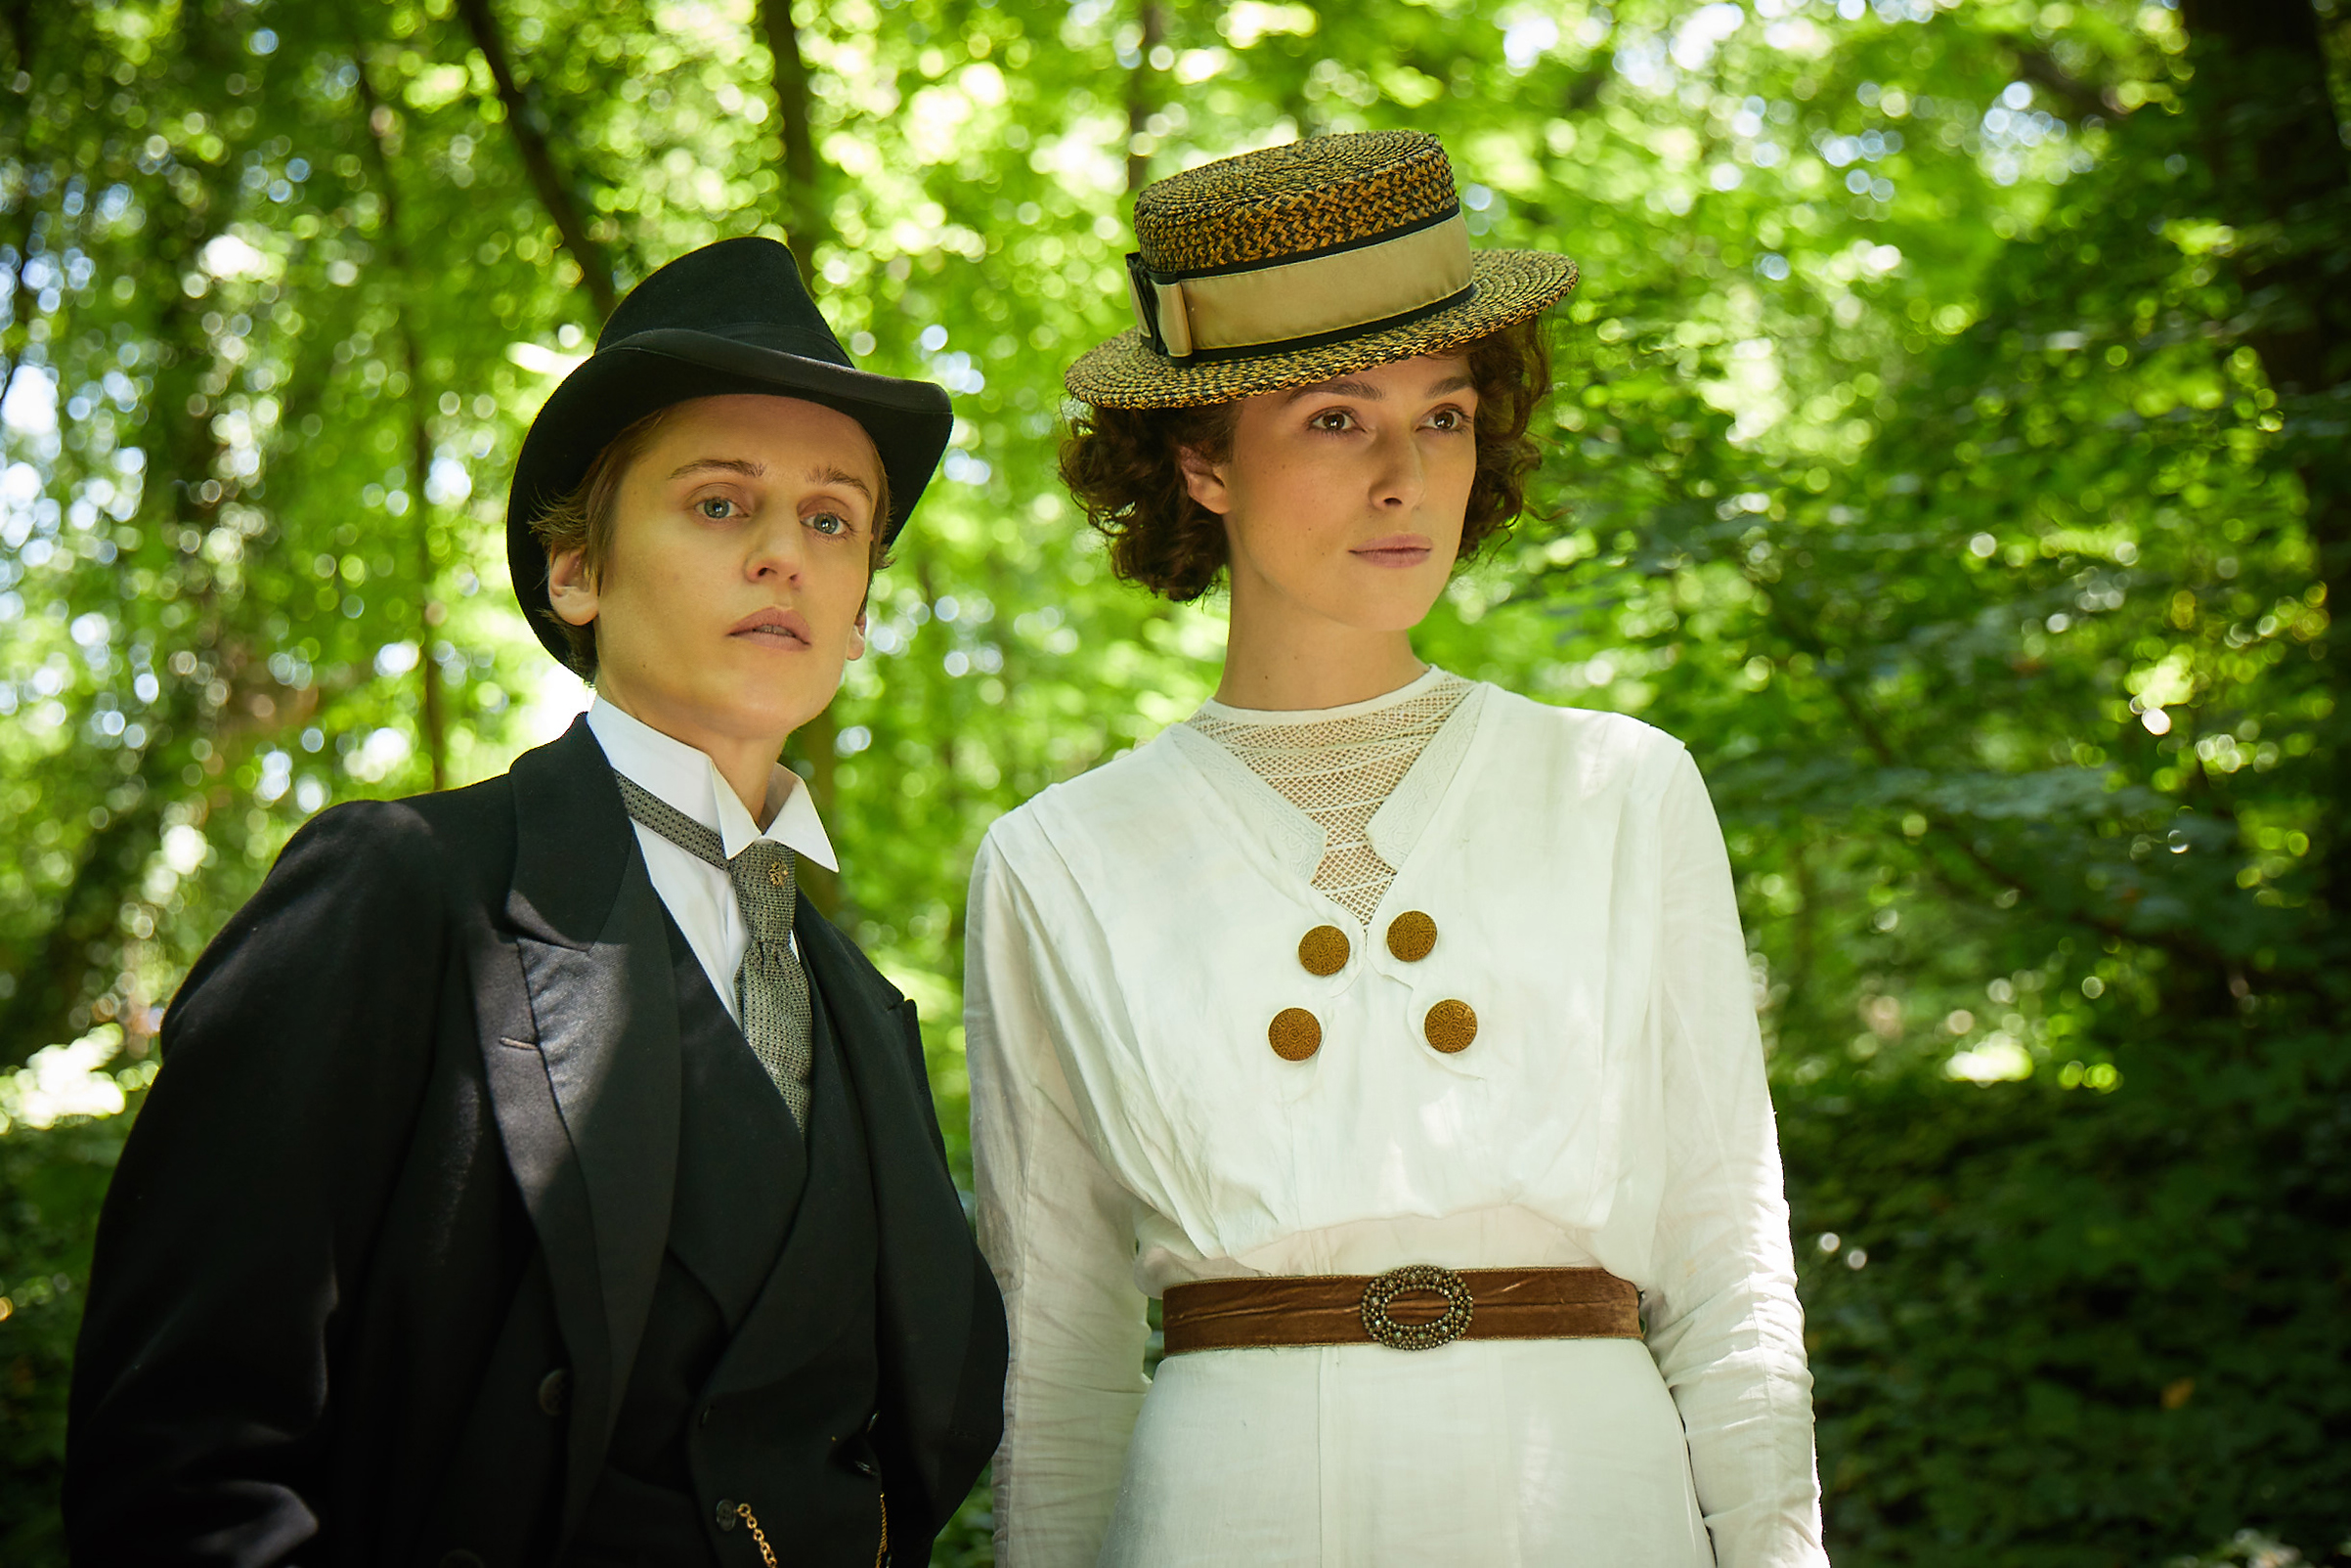 Denise Gough stars as Missy and Keira Knightley as Colette in the movie 'Colette'.